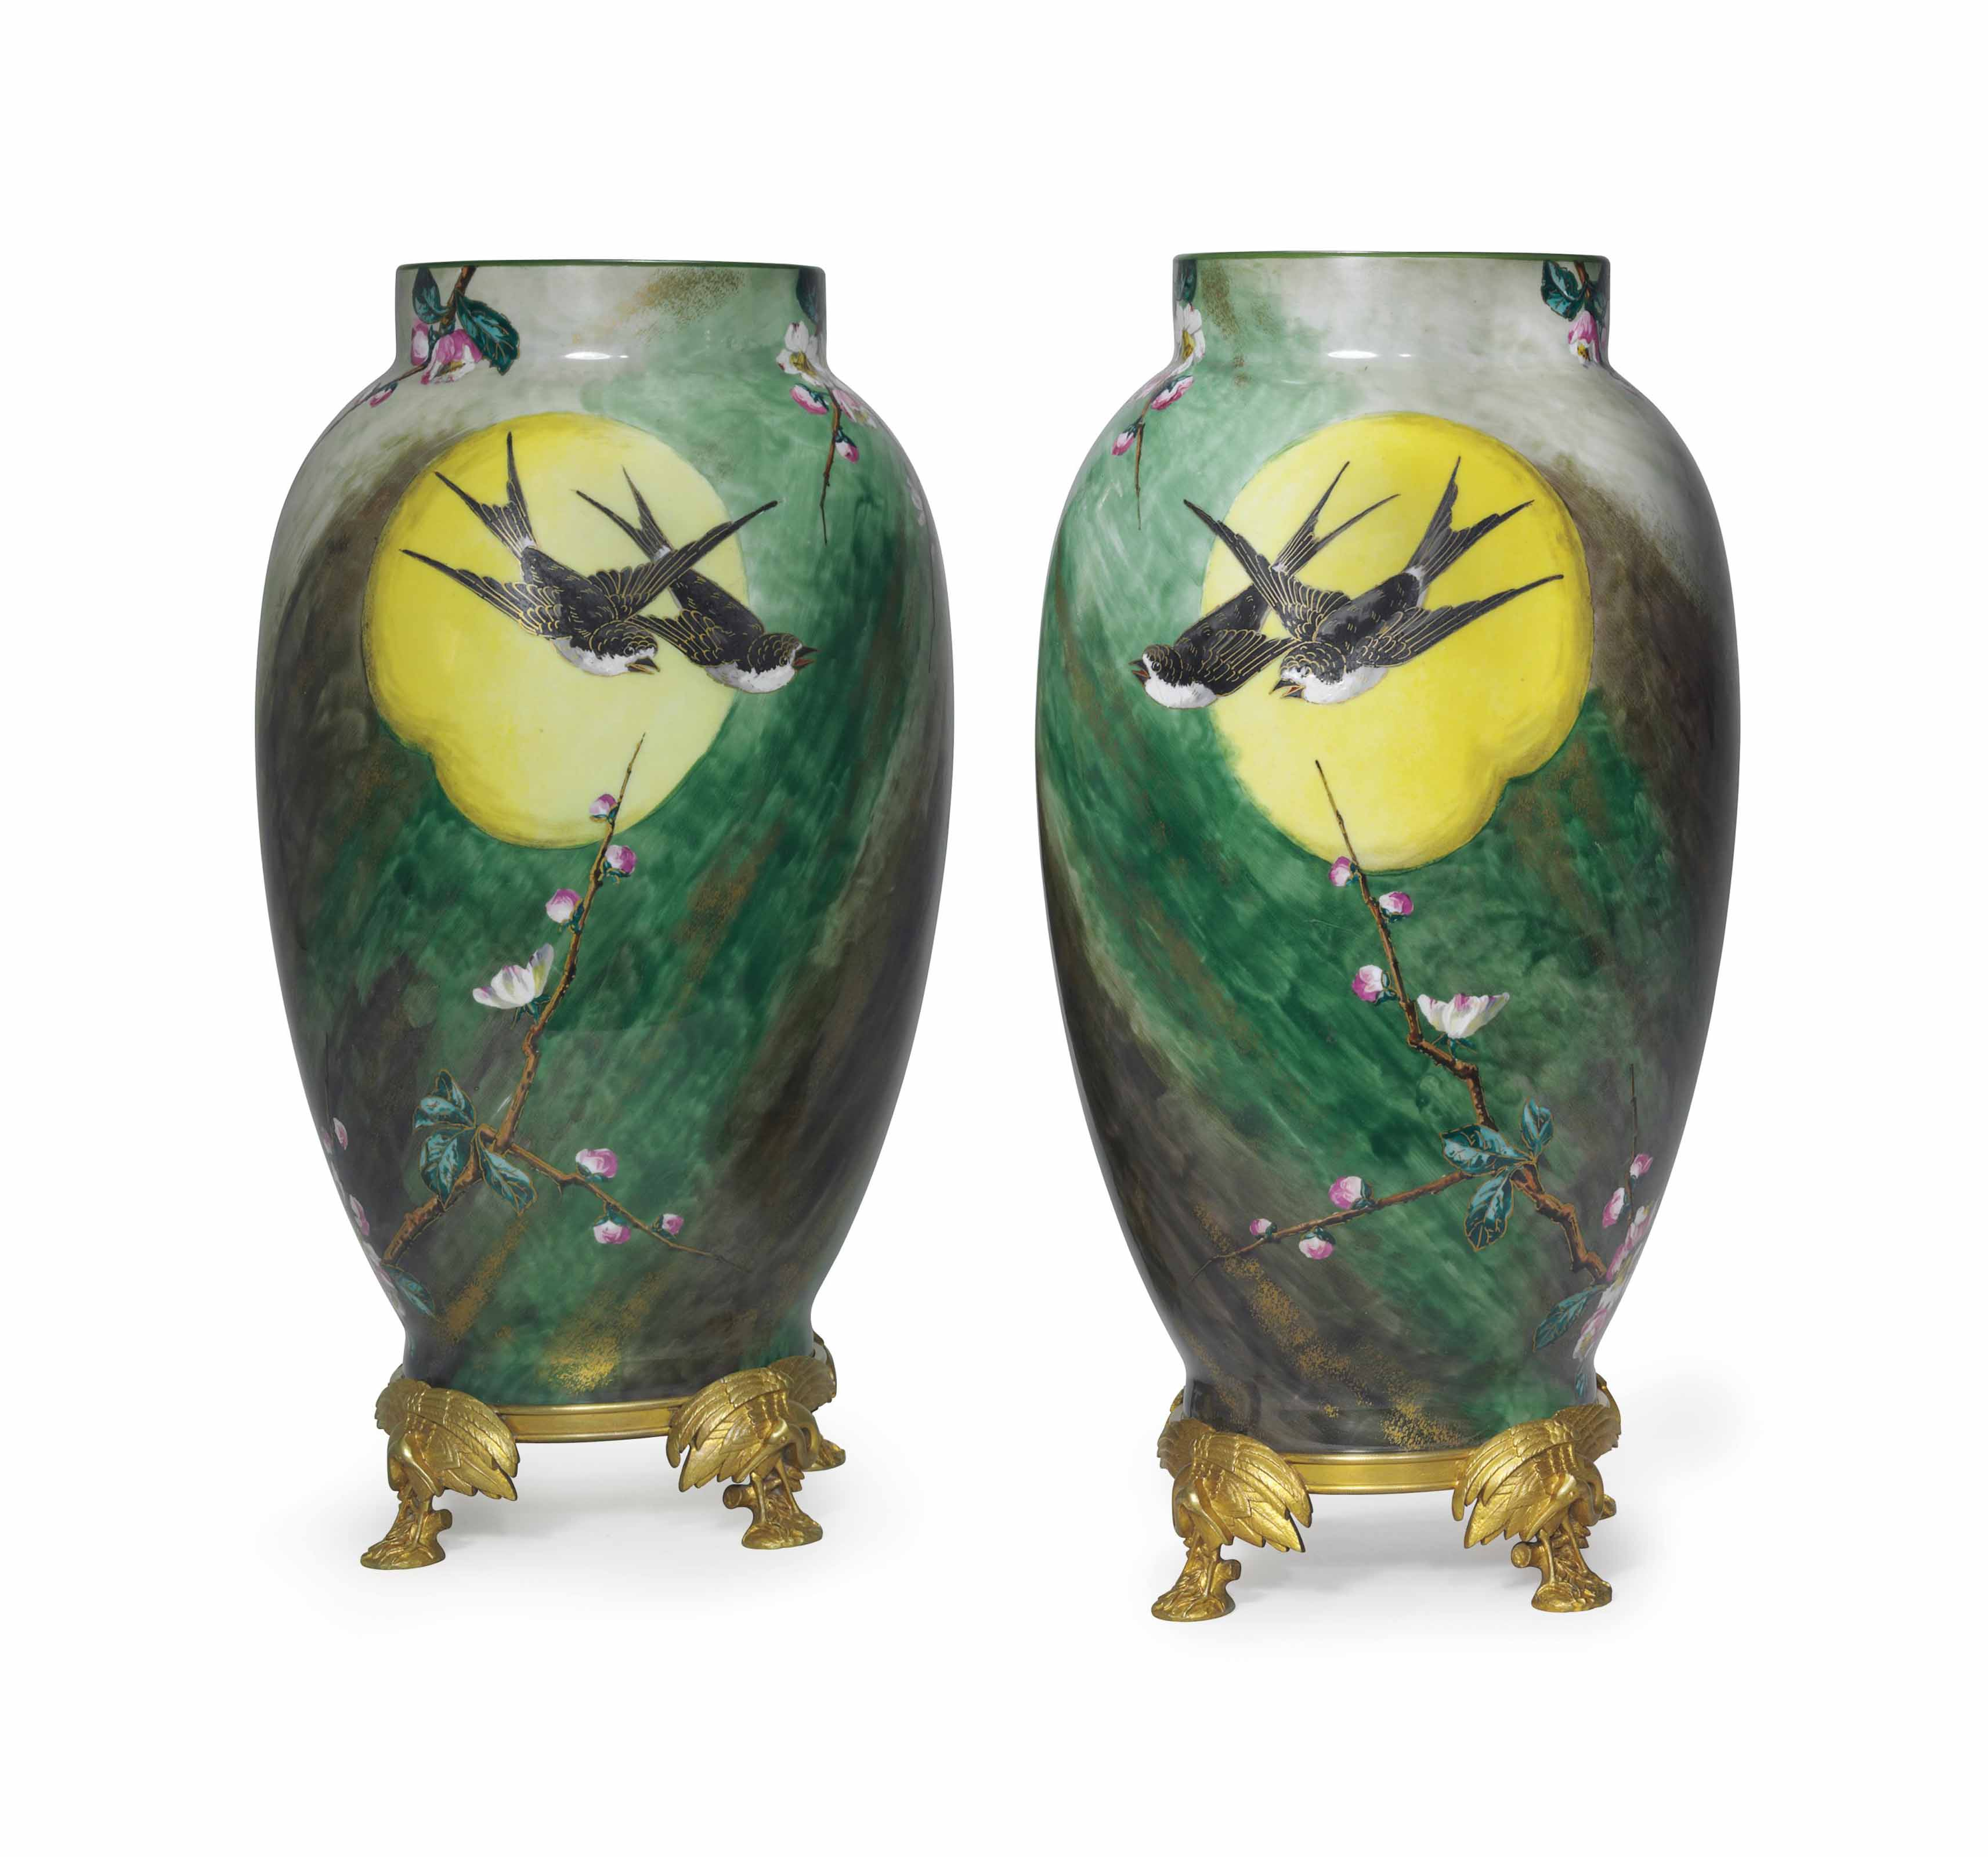 A PAIR OF ORMOLU-MOUNTED BACCARAT GLASS VASES